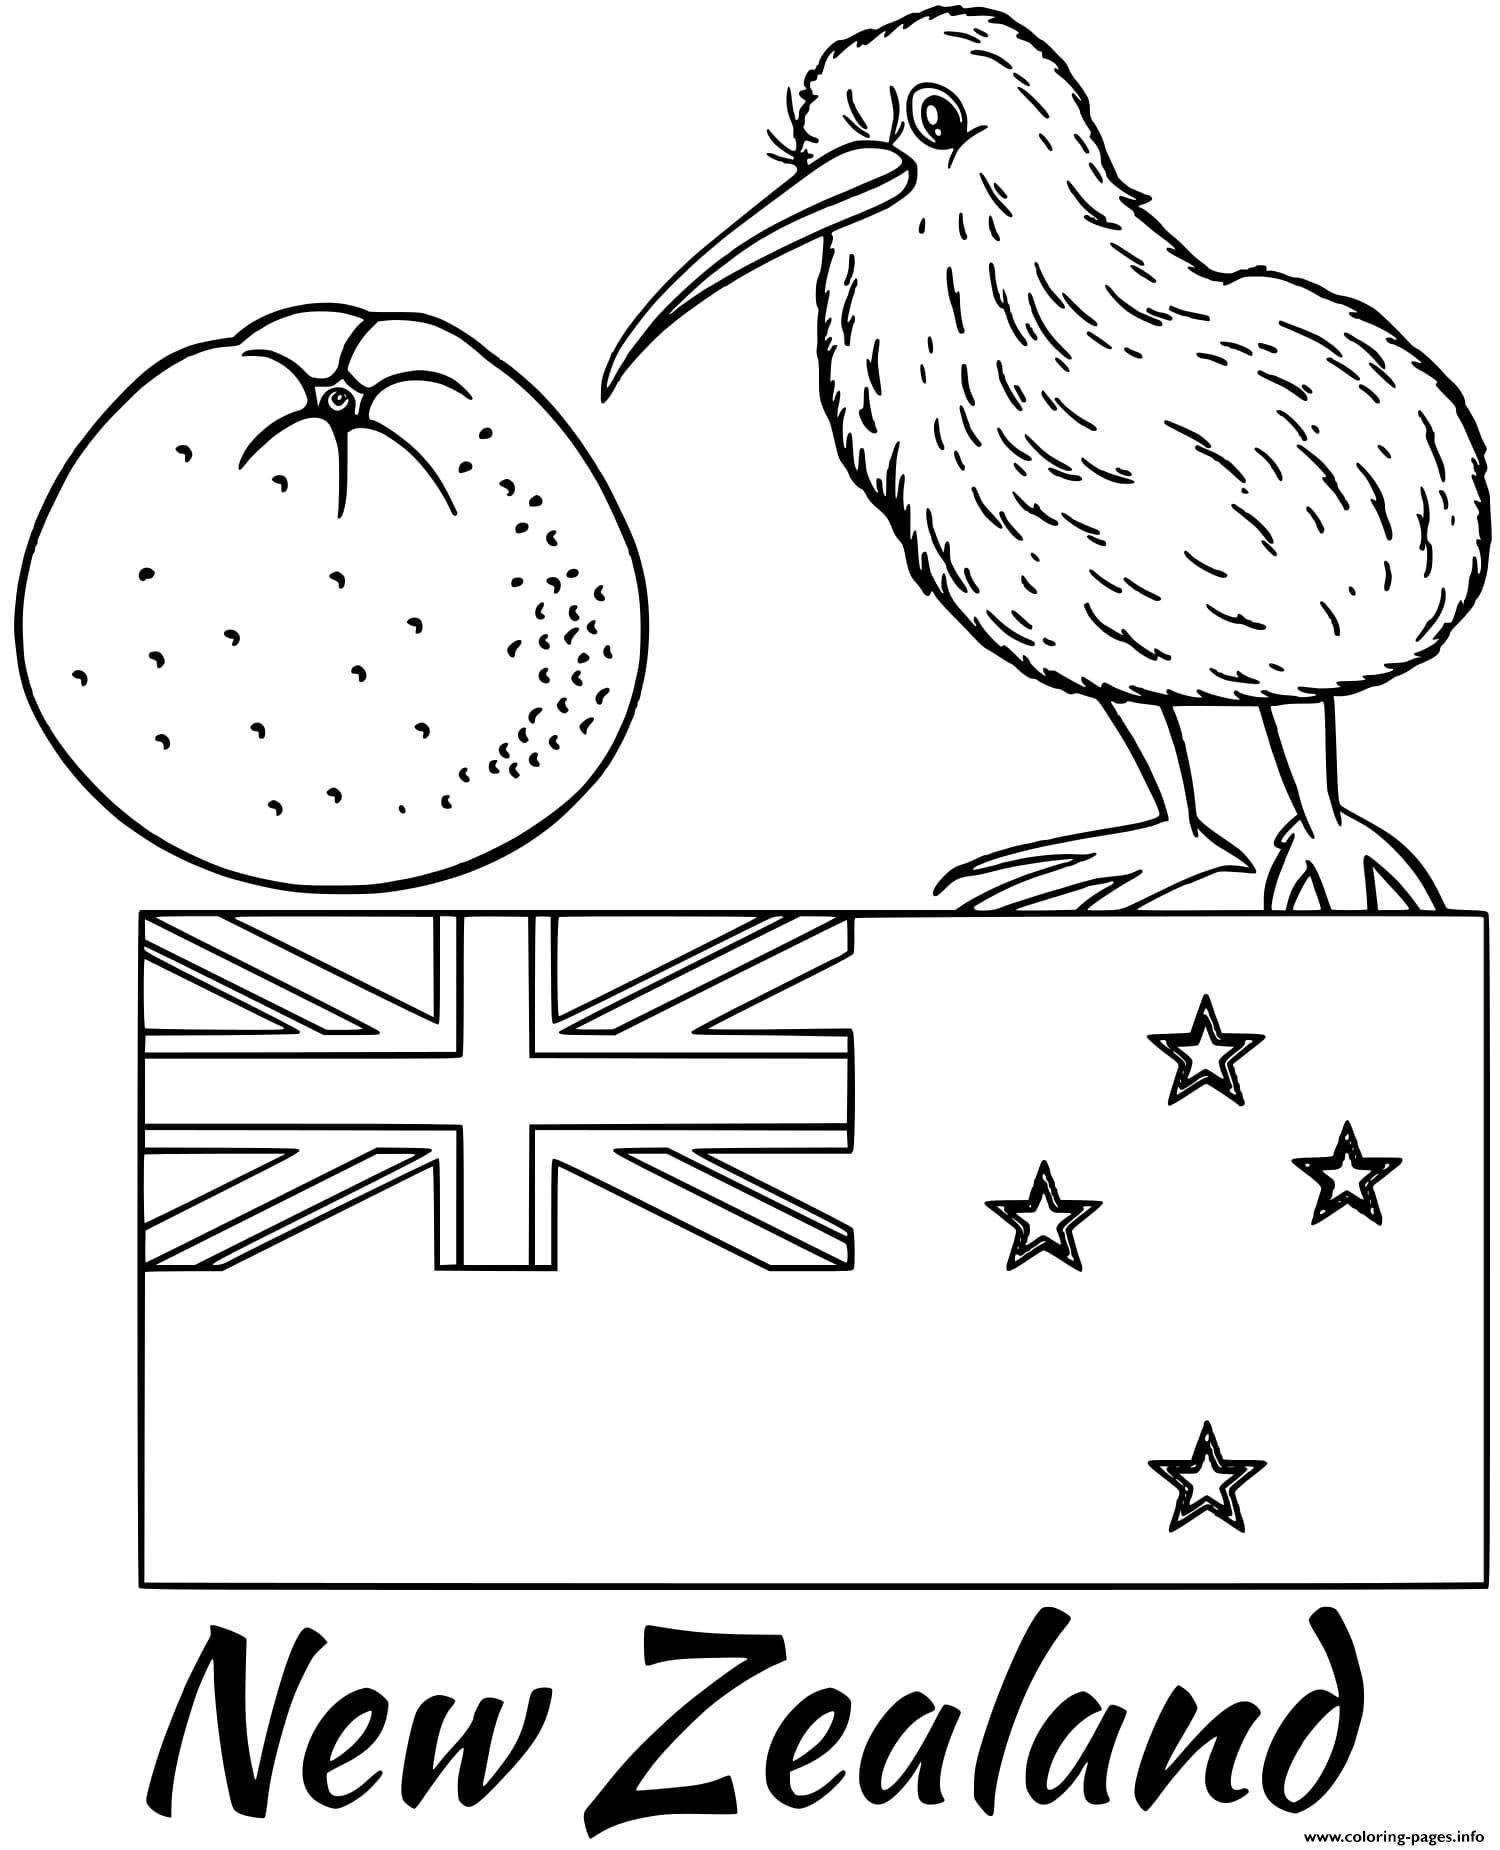 Print New Zealand Flag Kiwi Coloring Pages Flag Coloring Pages Star Coloring Pages New Zealand Flag